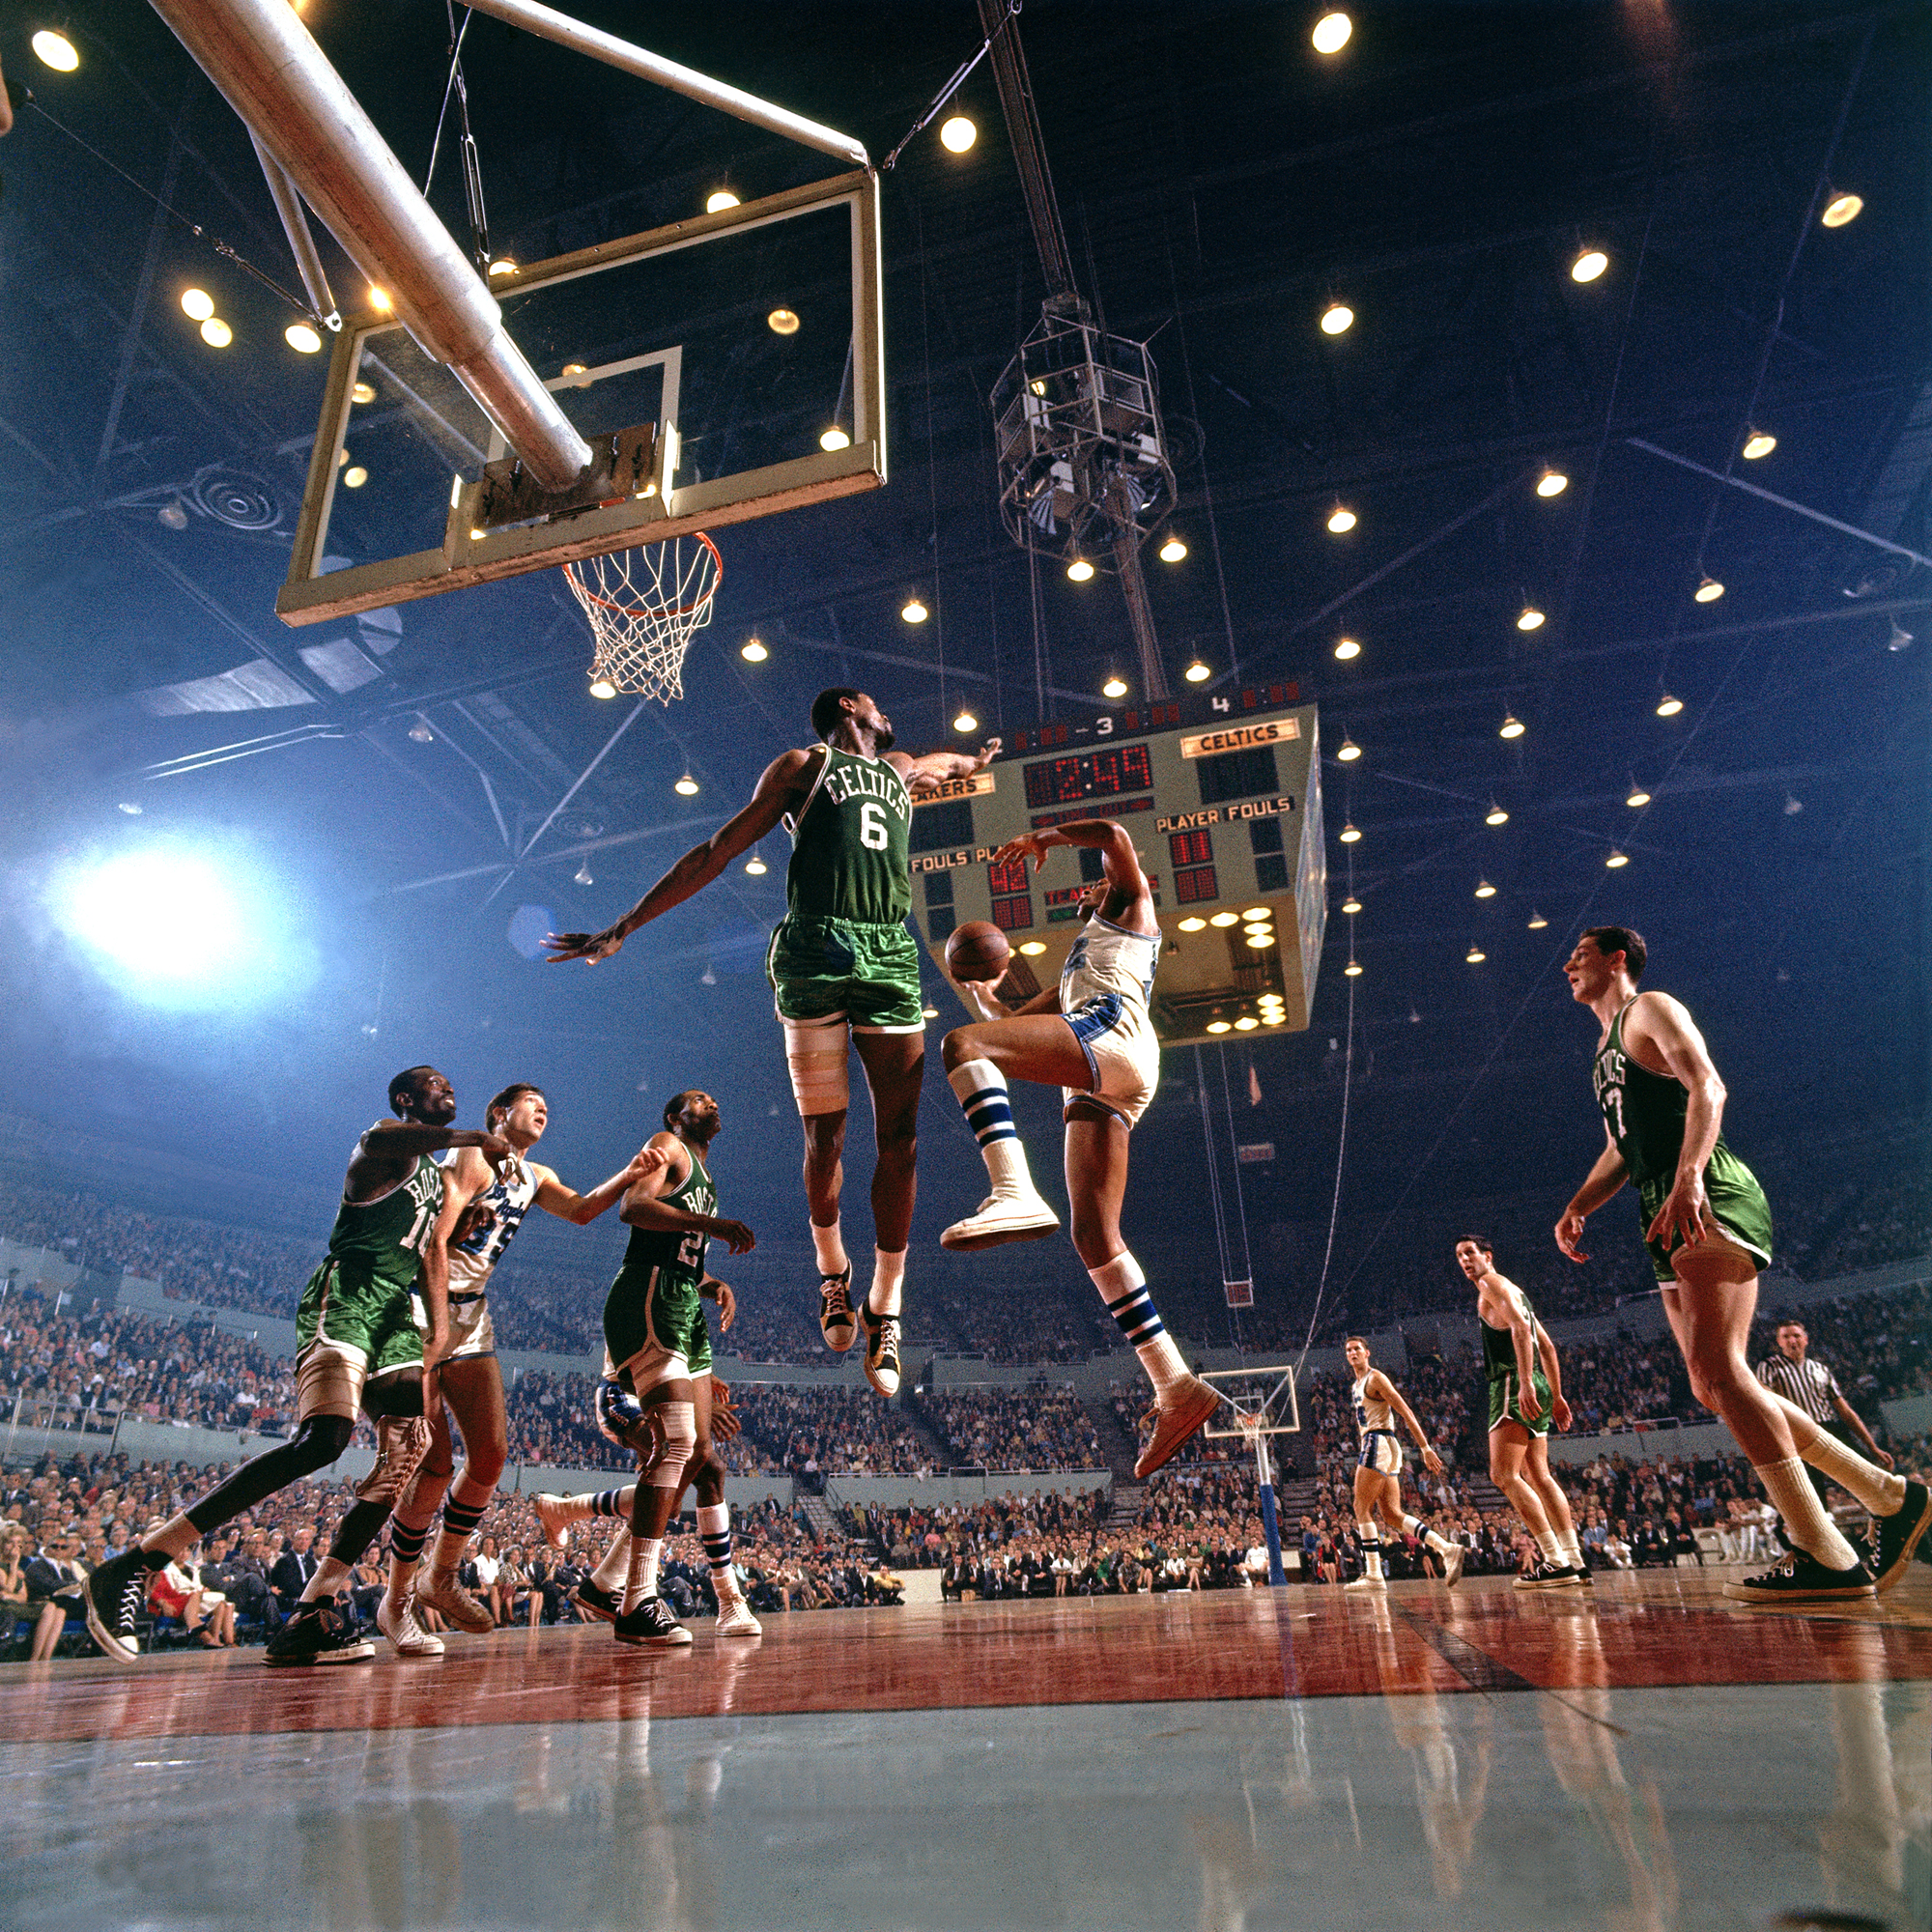 Bill Russell & Elgin Baylor, 1966